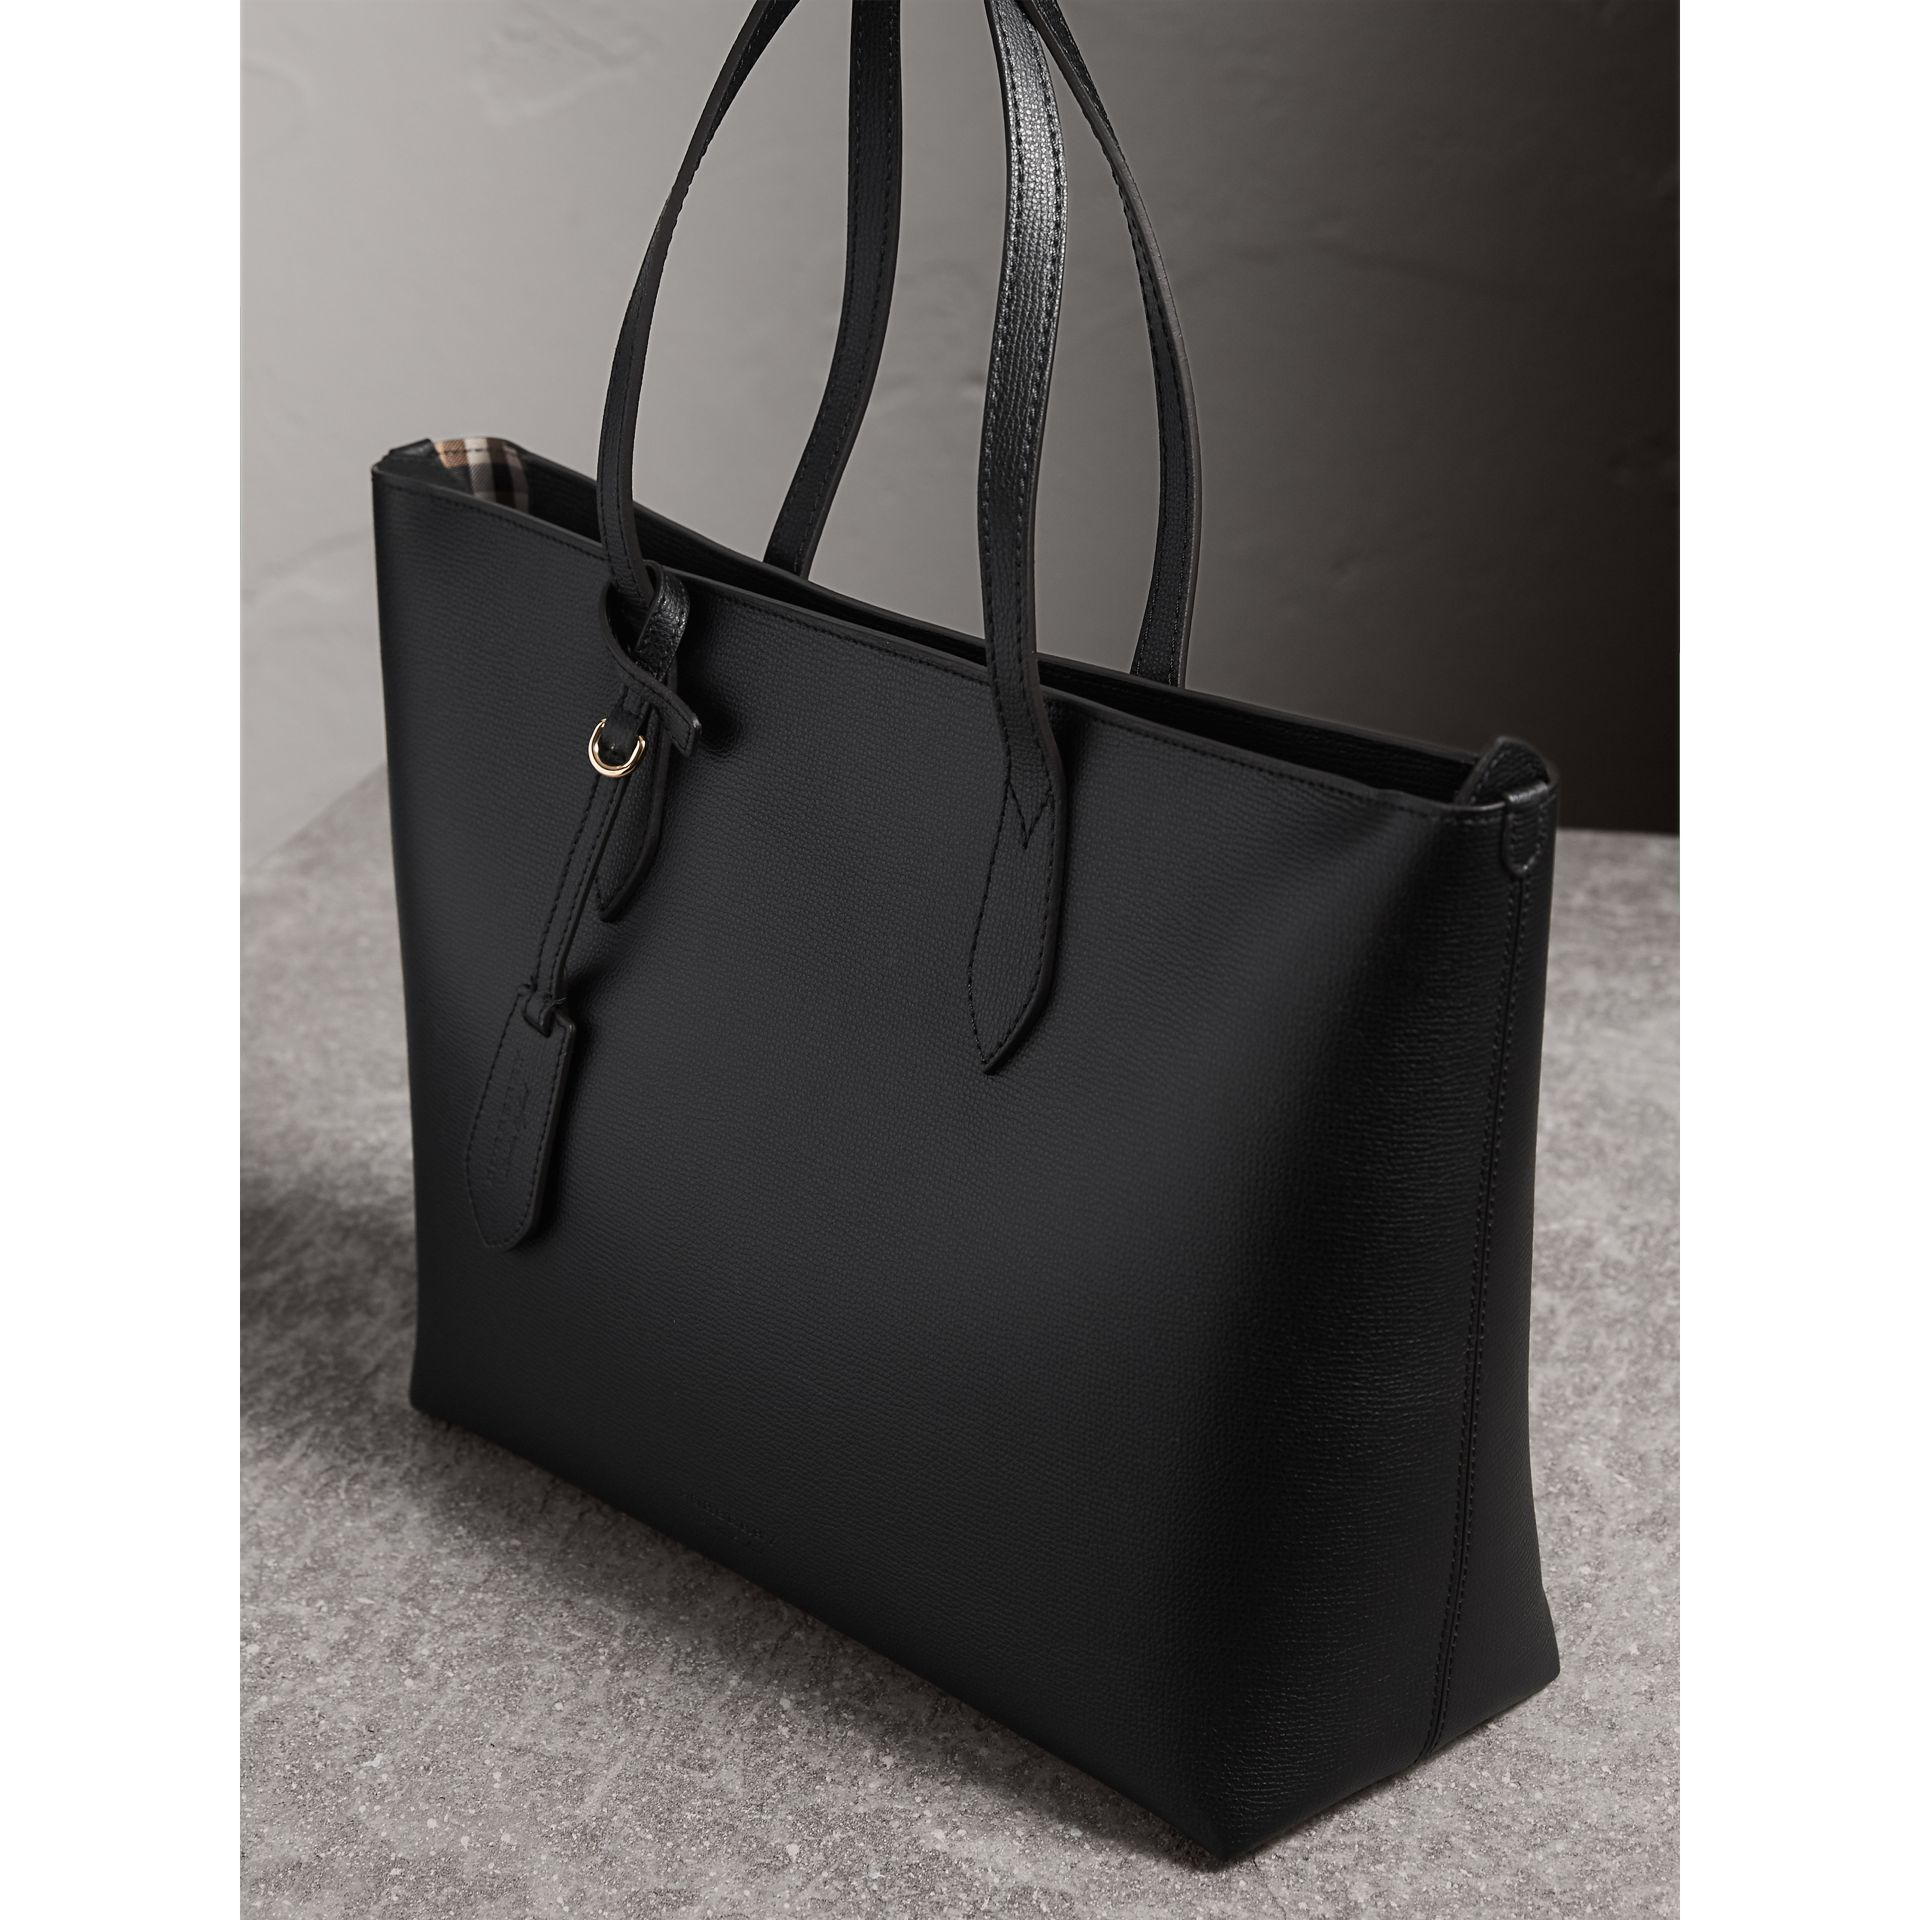 Medium Coated Leather Tote in Black - Women | Burberry - gallery image 5